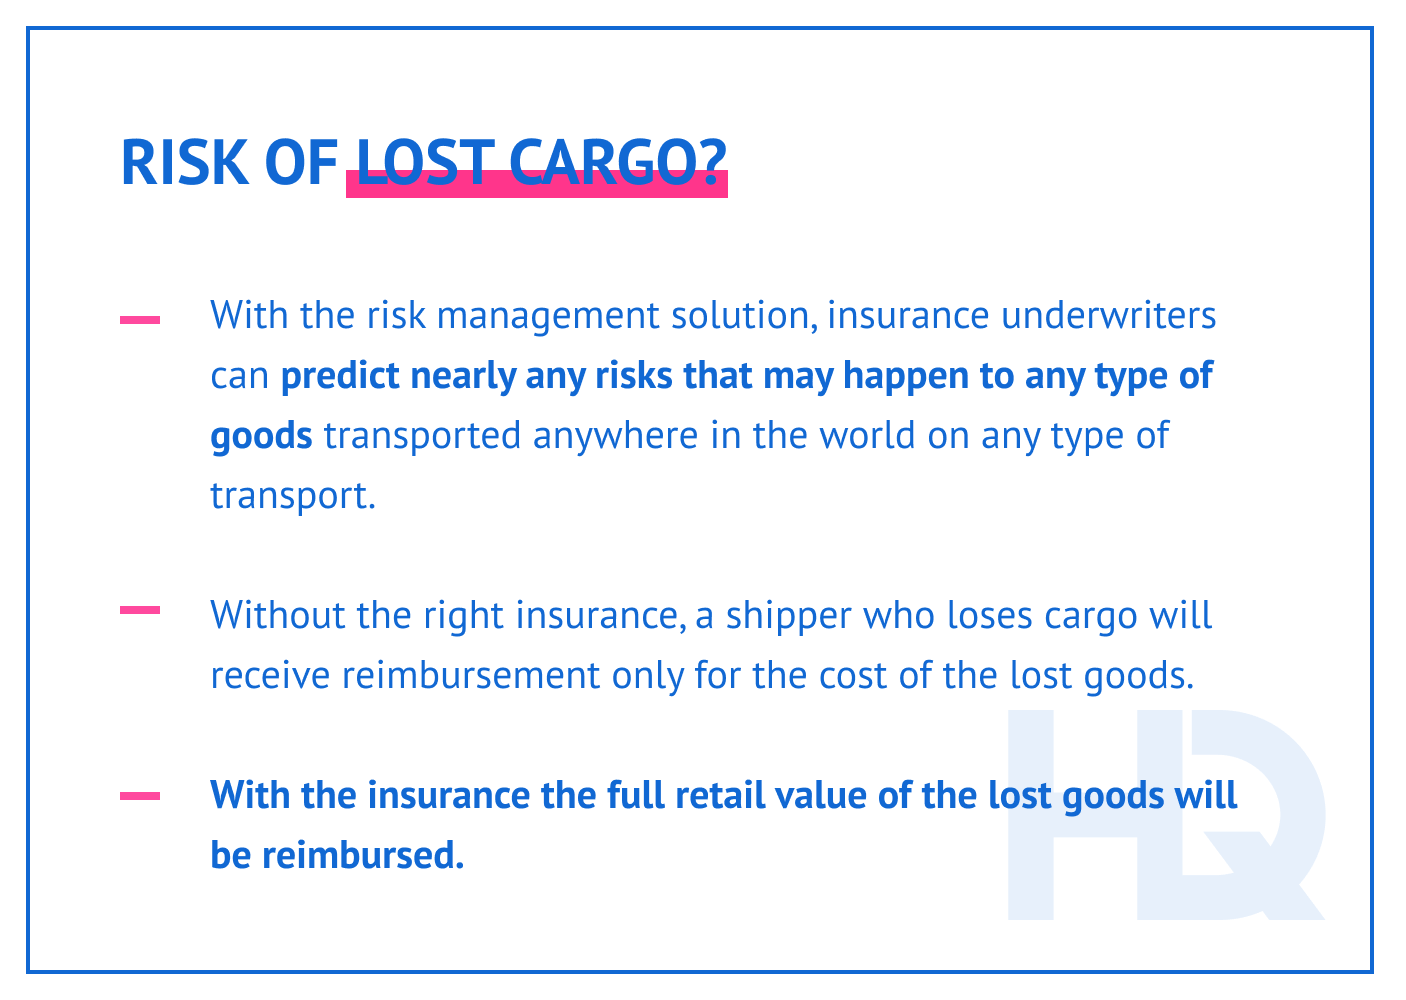 How the risk of lost cargo is mitigated.